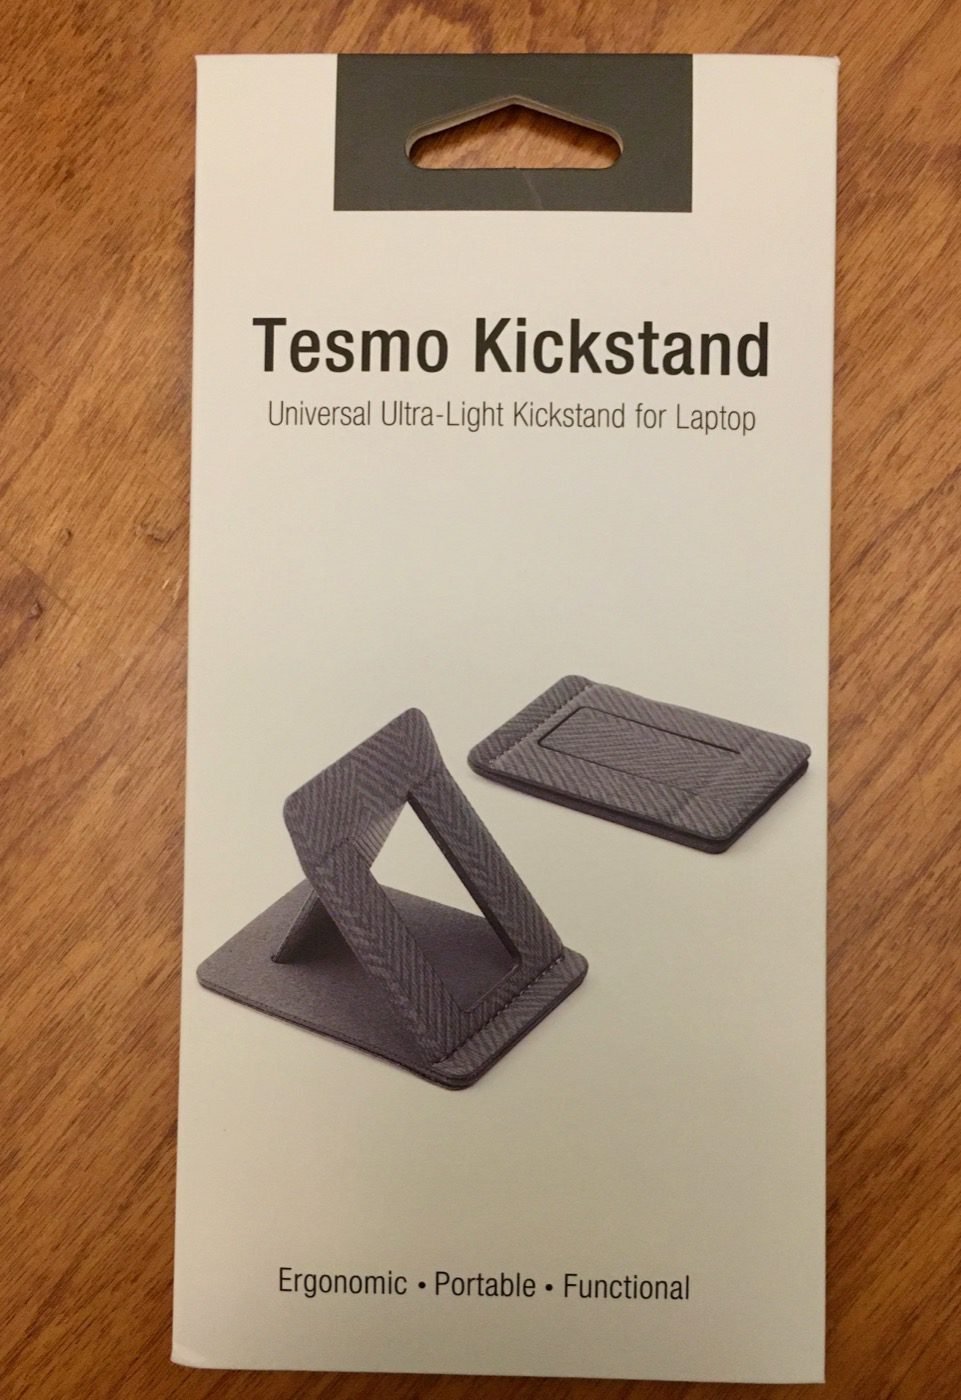 It's the Tesmo Kickstand review